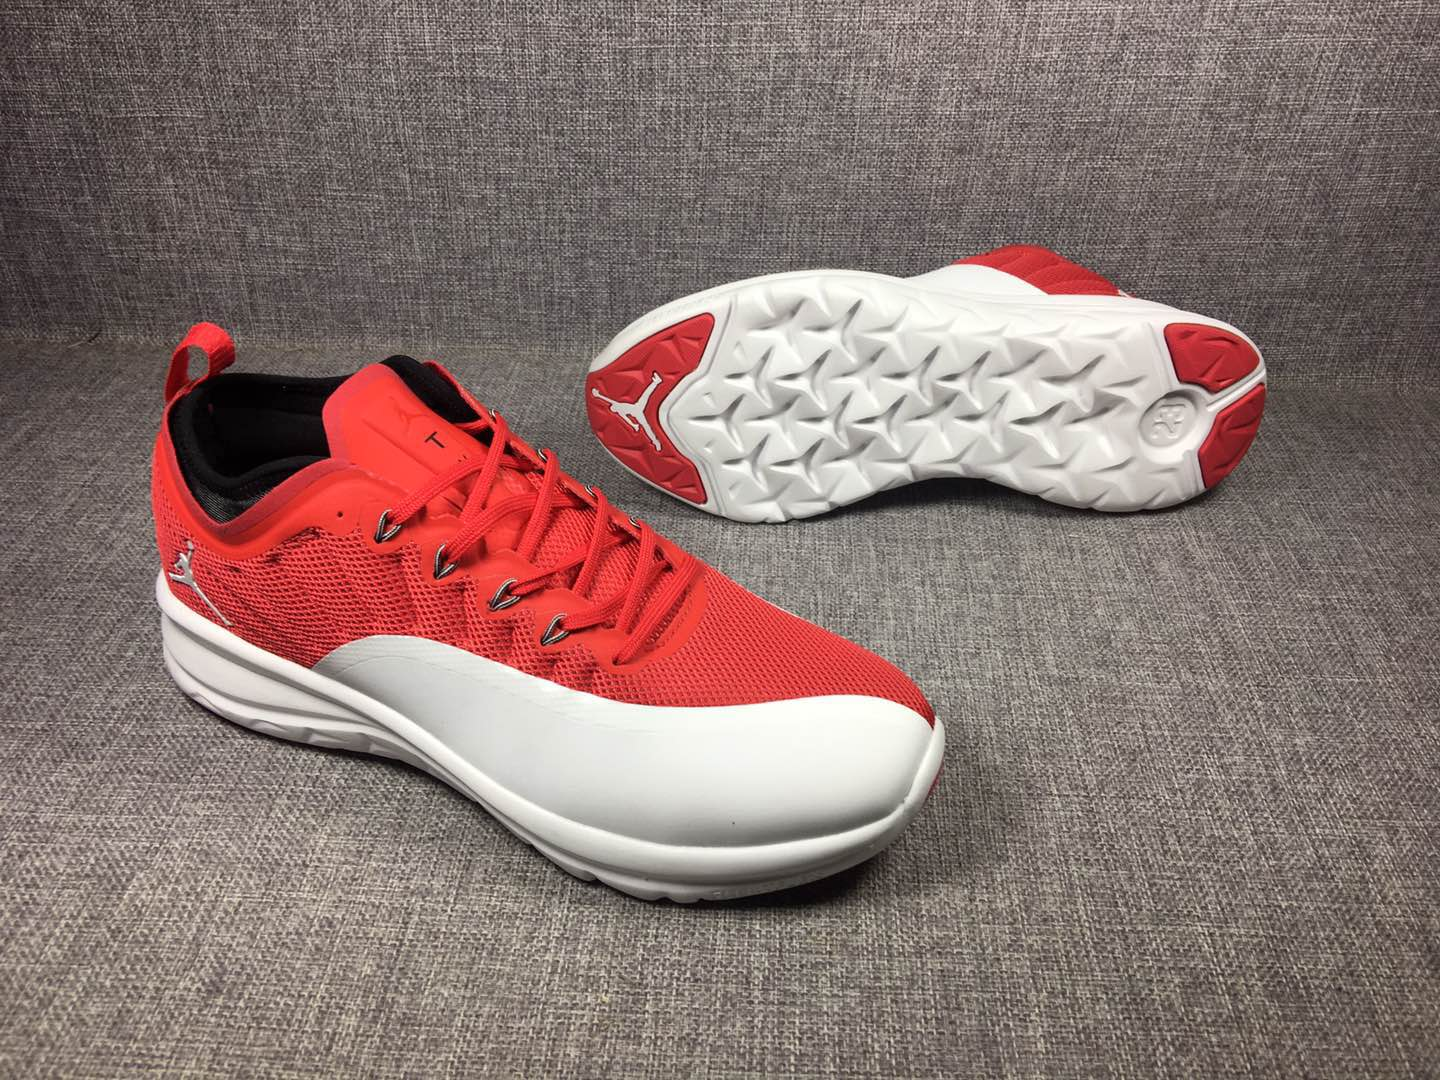 2018 New Air Jordan 12 Low Red White Shoes